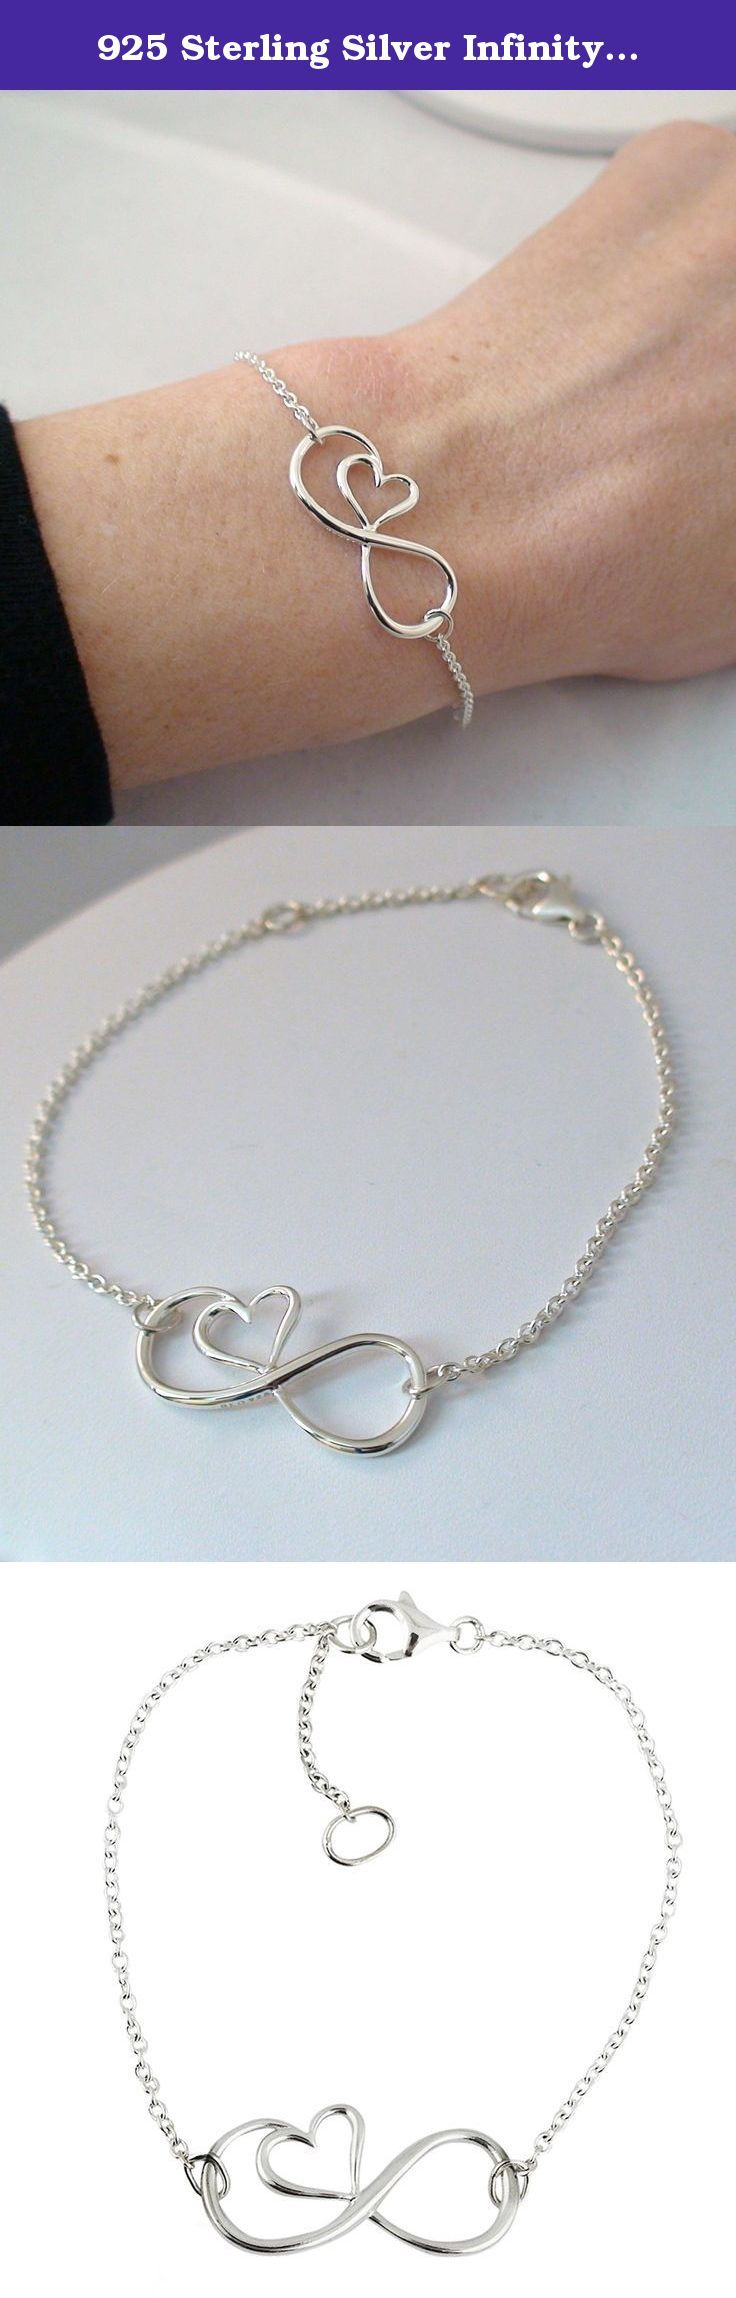 """925 Sterling Silver Infinity Sign with Heart Bracelet, 8 Inches. Materials: Infinity Heart bracelet is made of genuine 925 sterling silver. Dimensions: Infinity sign measures 14 mm x 29 mm (9/16"""" x 1 1/8"""") Infinity Heart bracelet features a 7 inch chain with a 1"""" extension for a total of 8 inches. Bracelet comes in a gift box. ."""